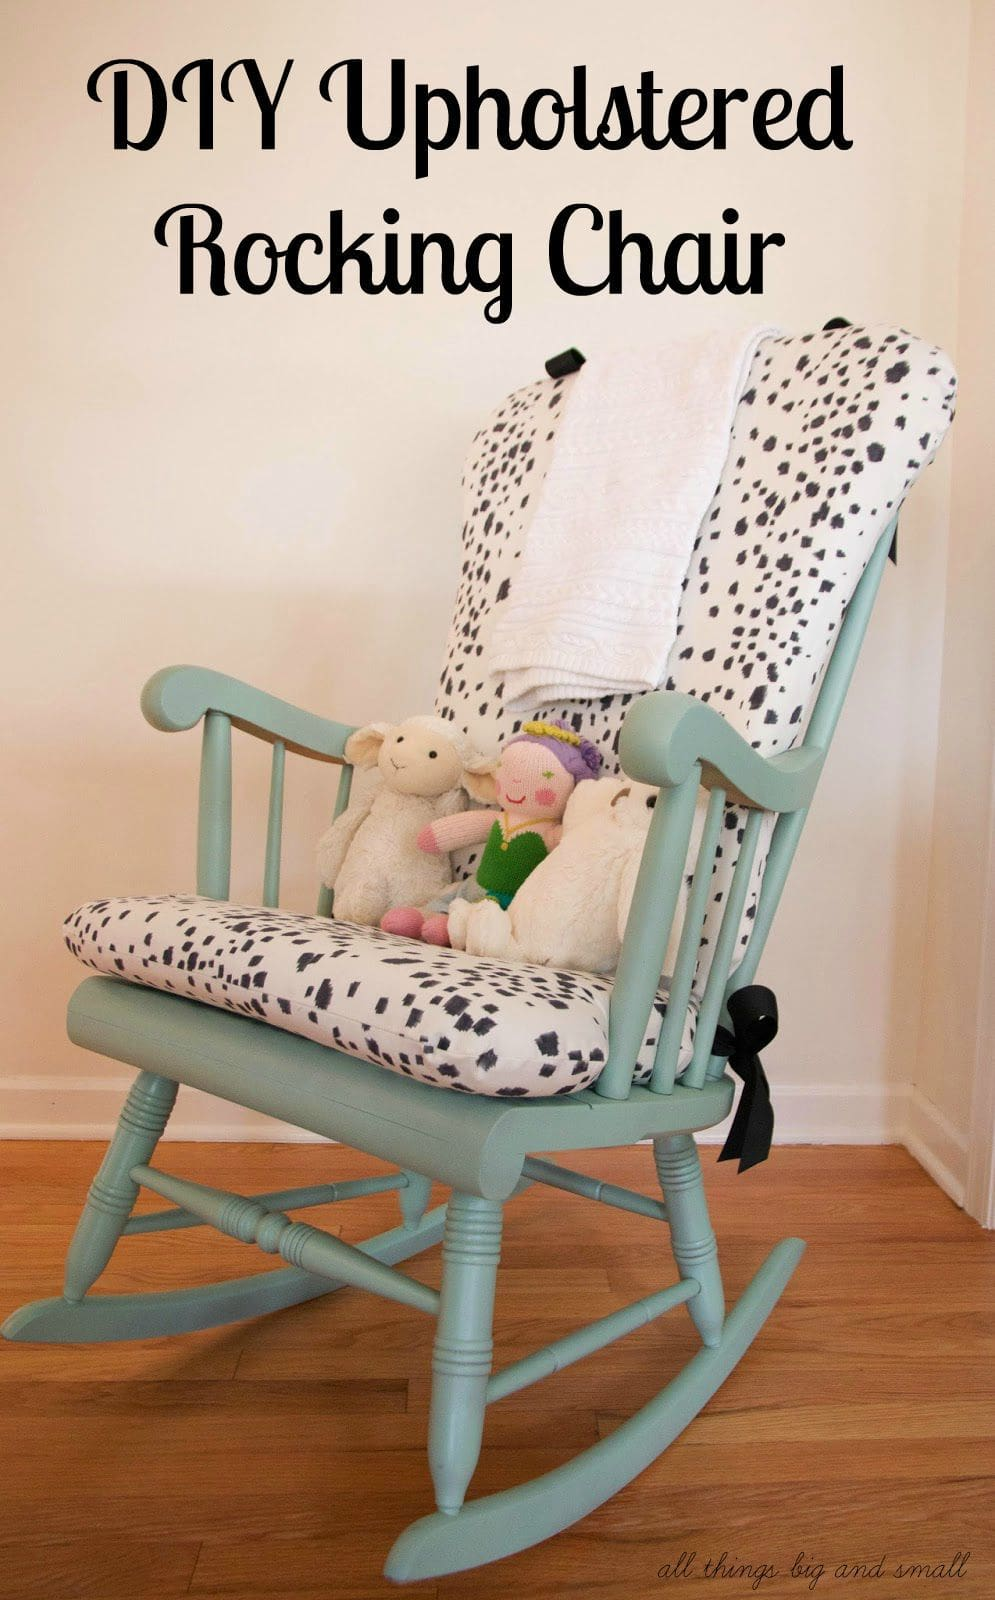 diy les touches upholstered rocking chair. Black Bedroom Furniture Sets. Home Design Ideas